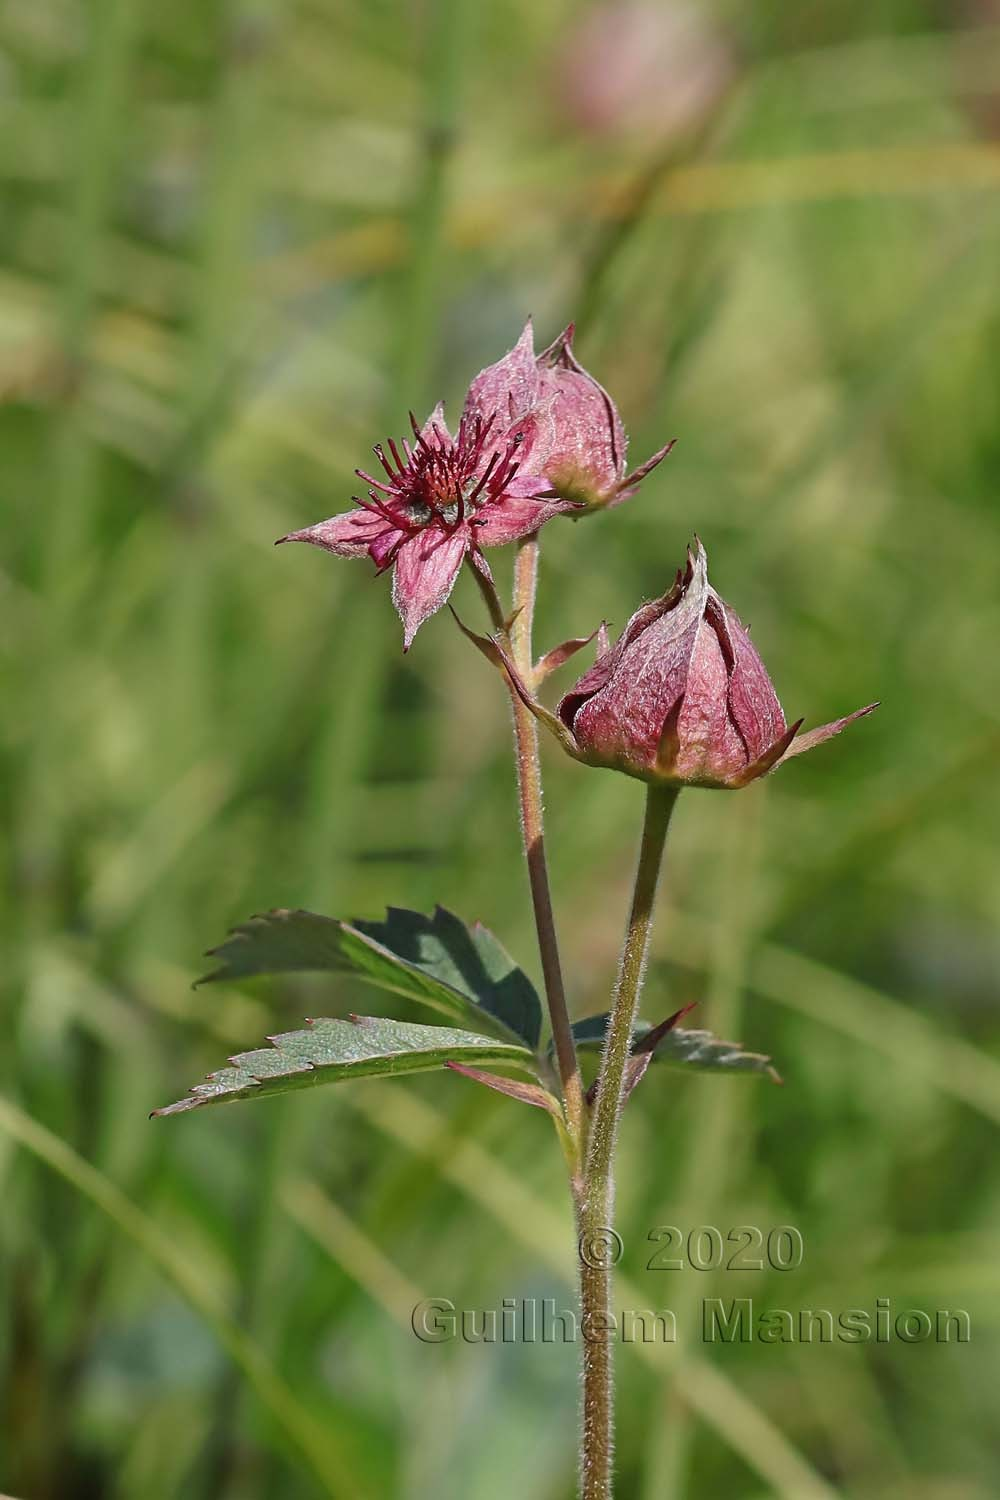 Comarum palustre [Potentilla palustris]